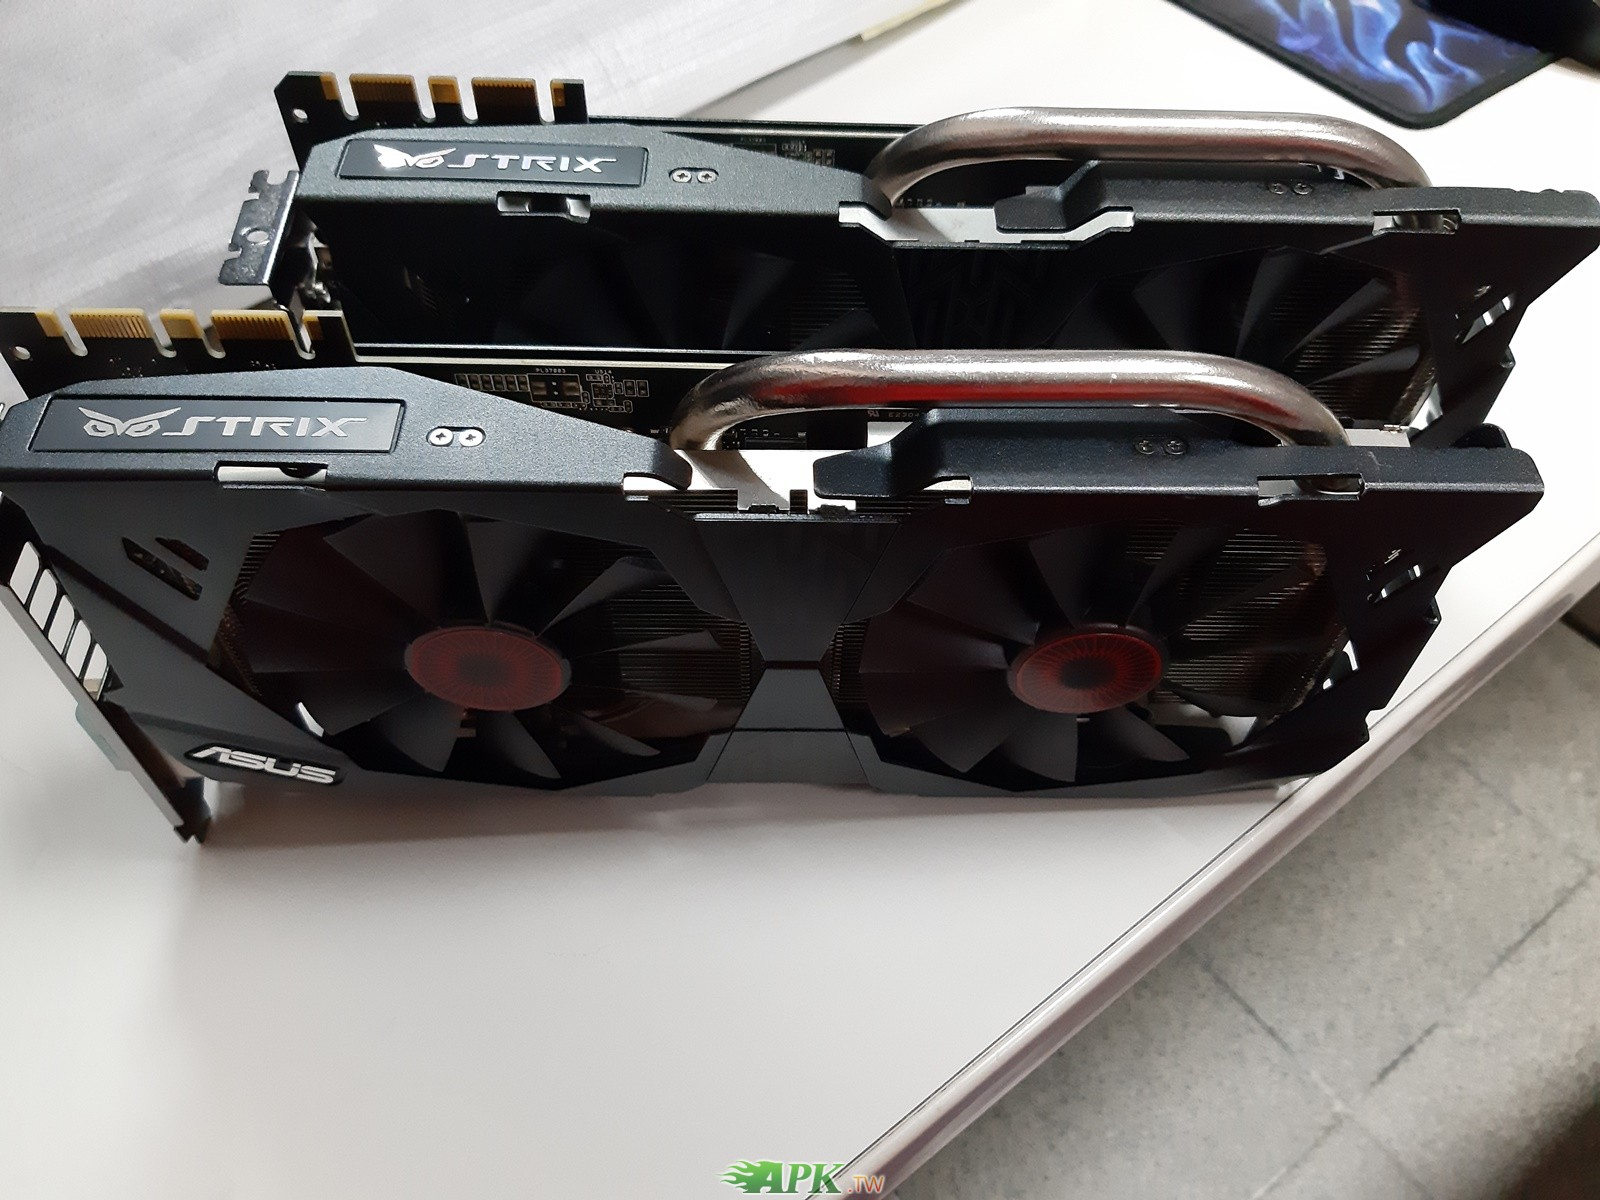 嘉義售 - 顯示卡 ASUS STRIX GTX 970 '2-Way SLI'